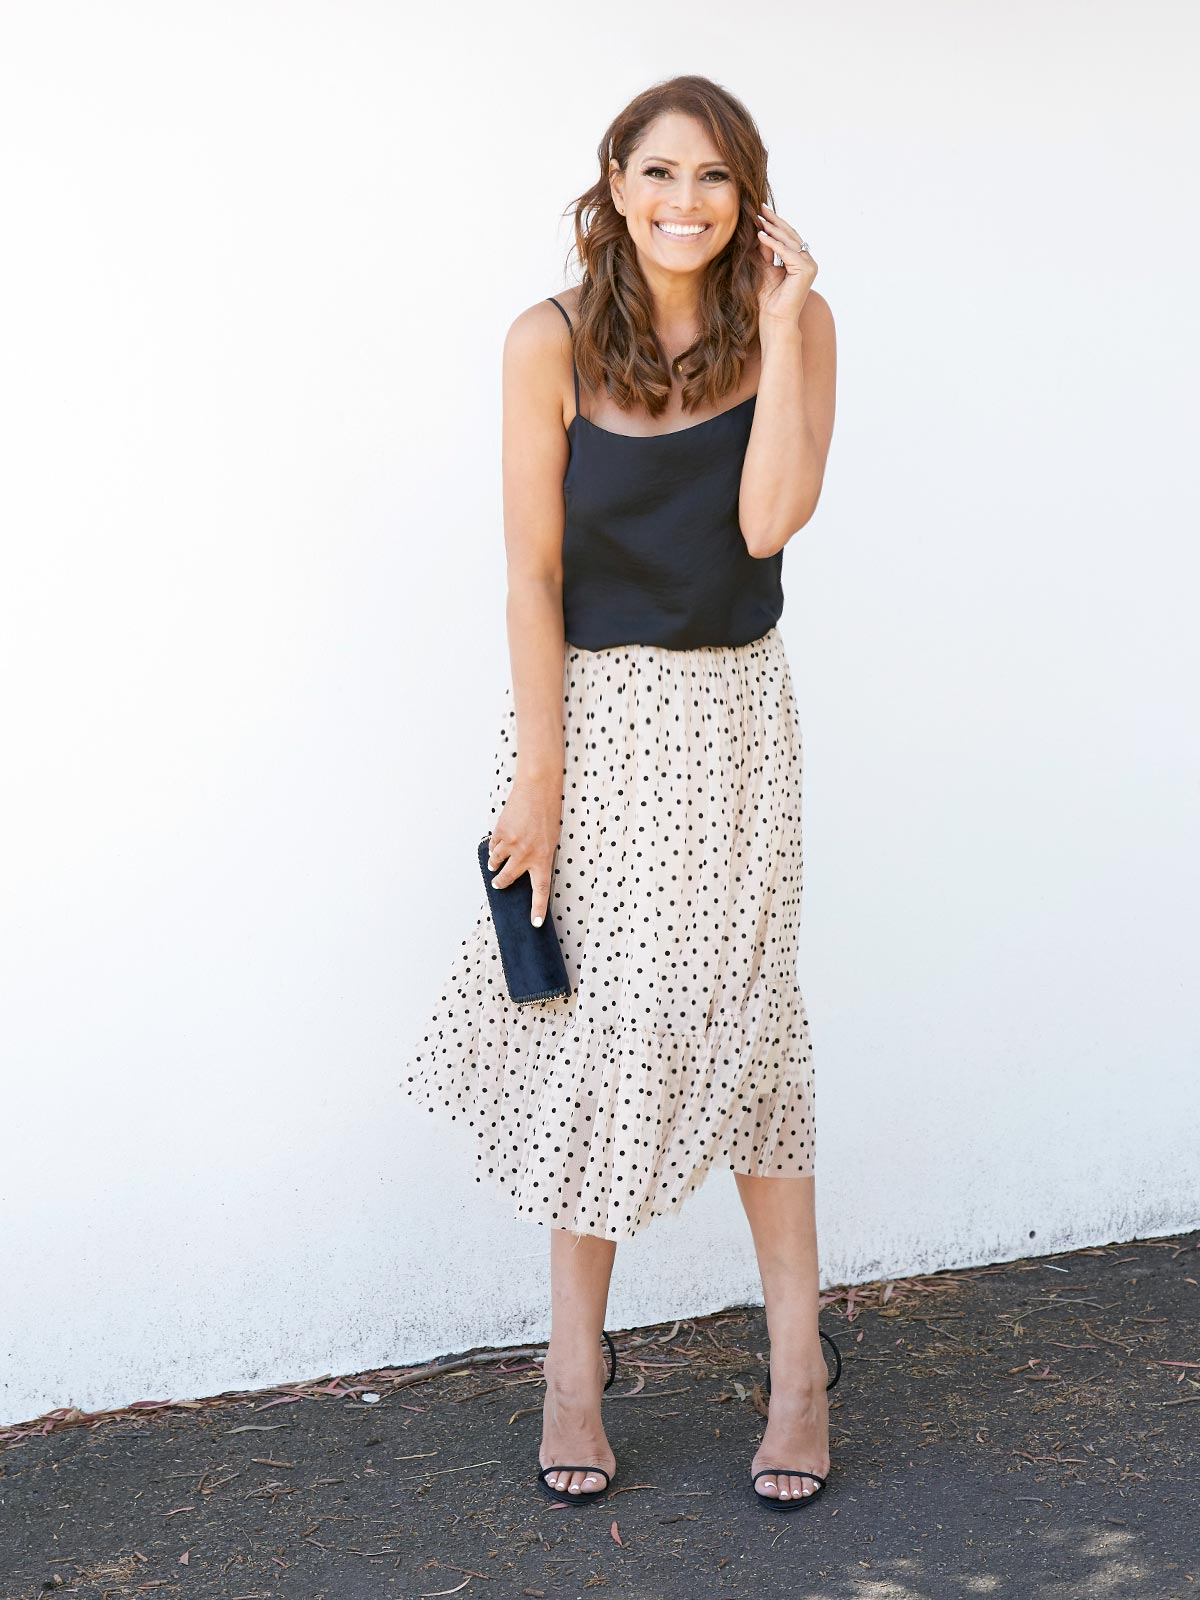 YOU'VE GOT THE LOVE POLKA DOT SKIRT